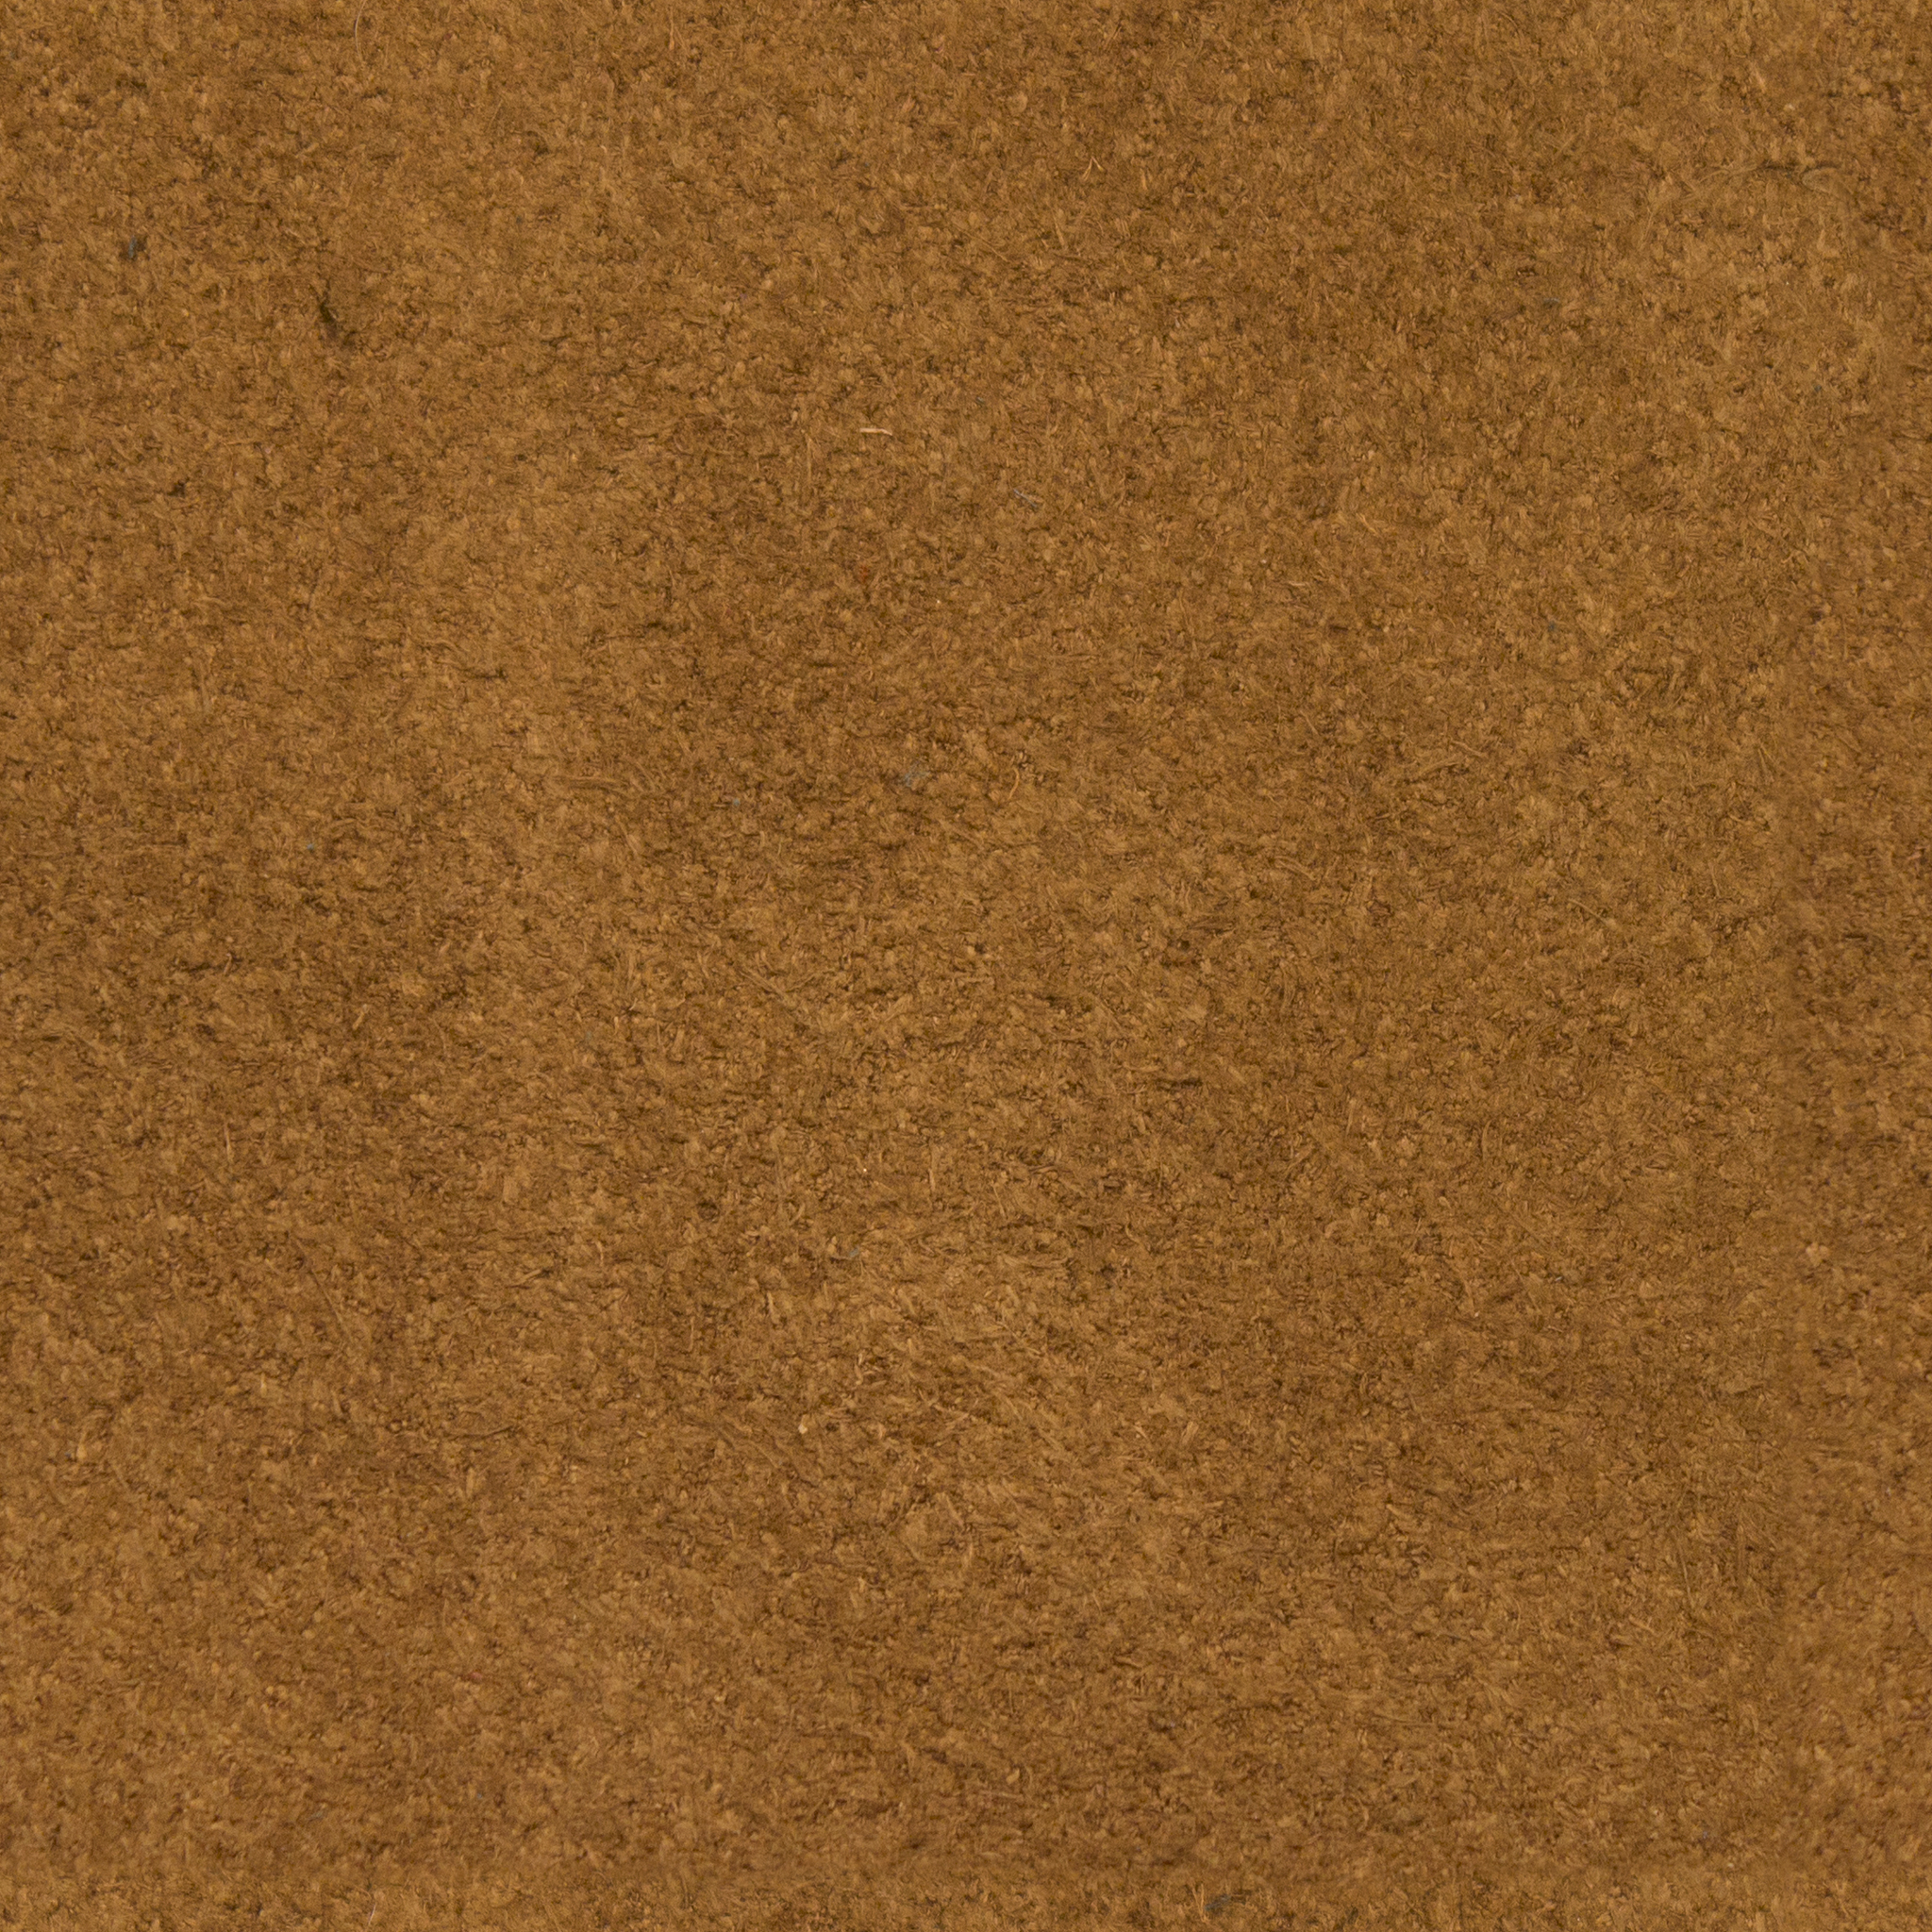 Russet Nubuck Leather.jpg